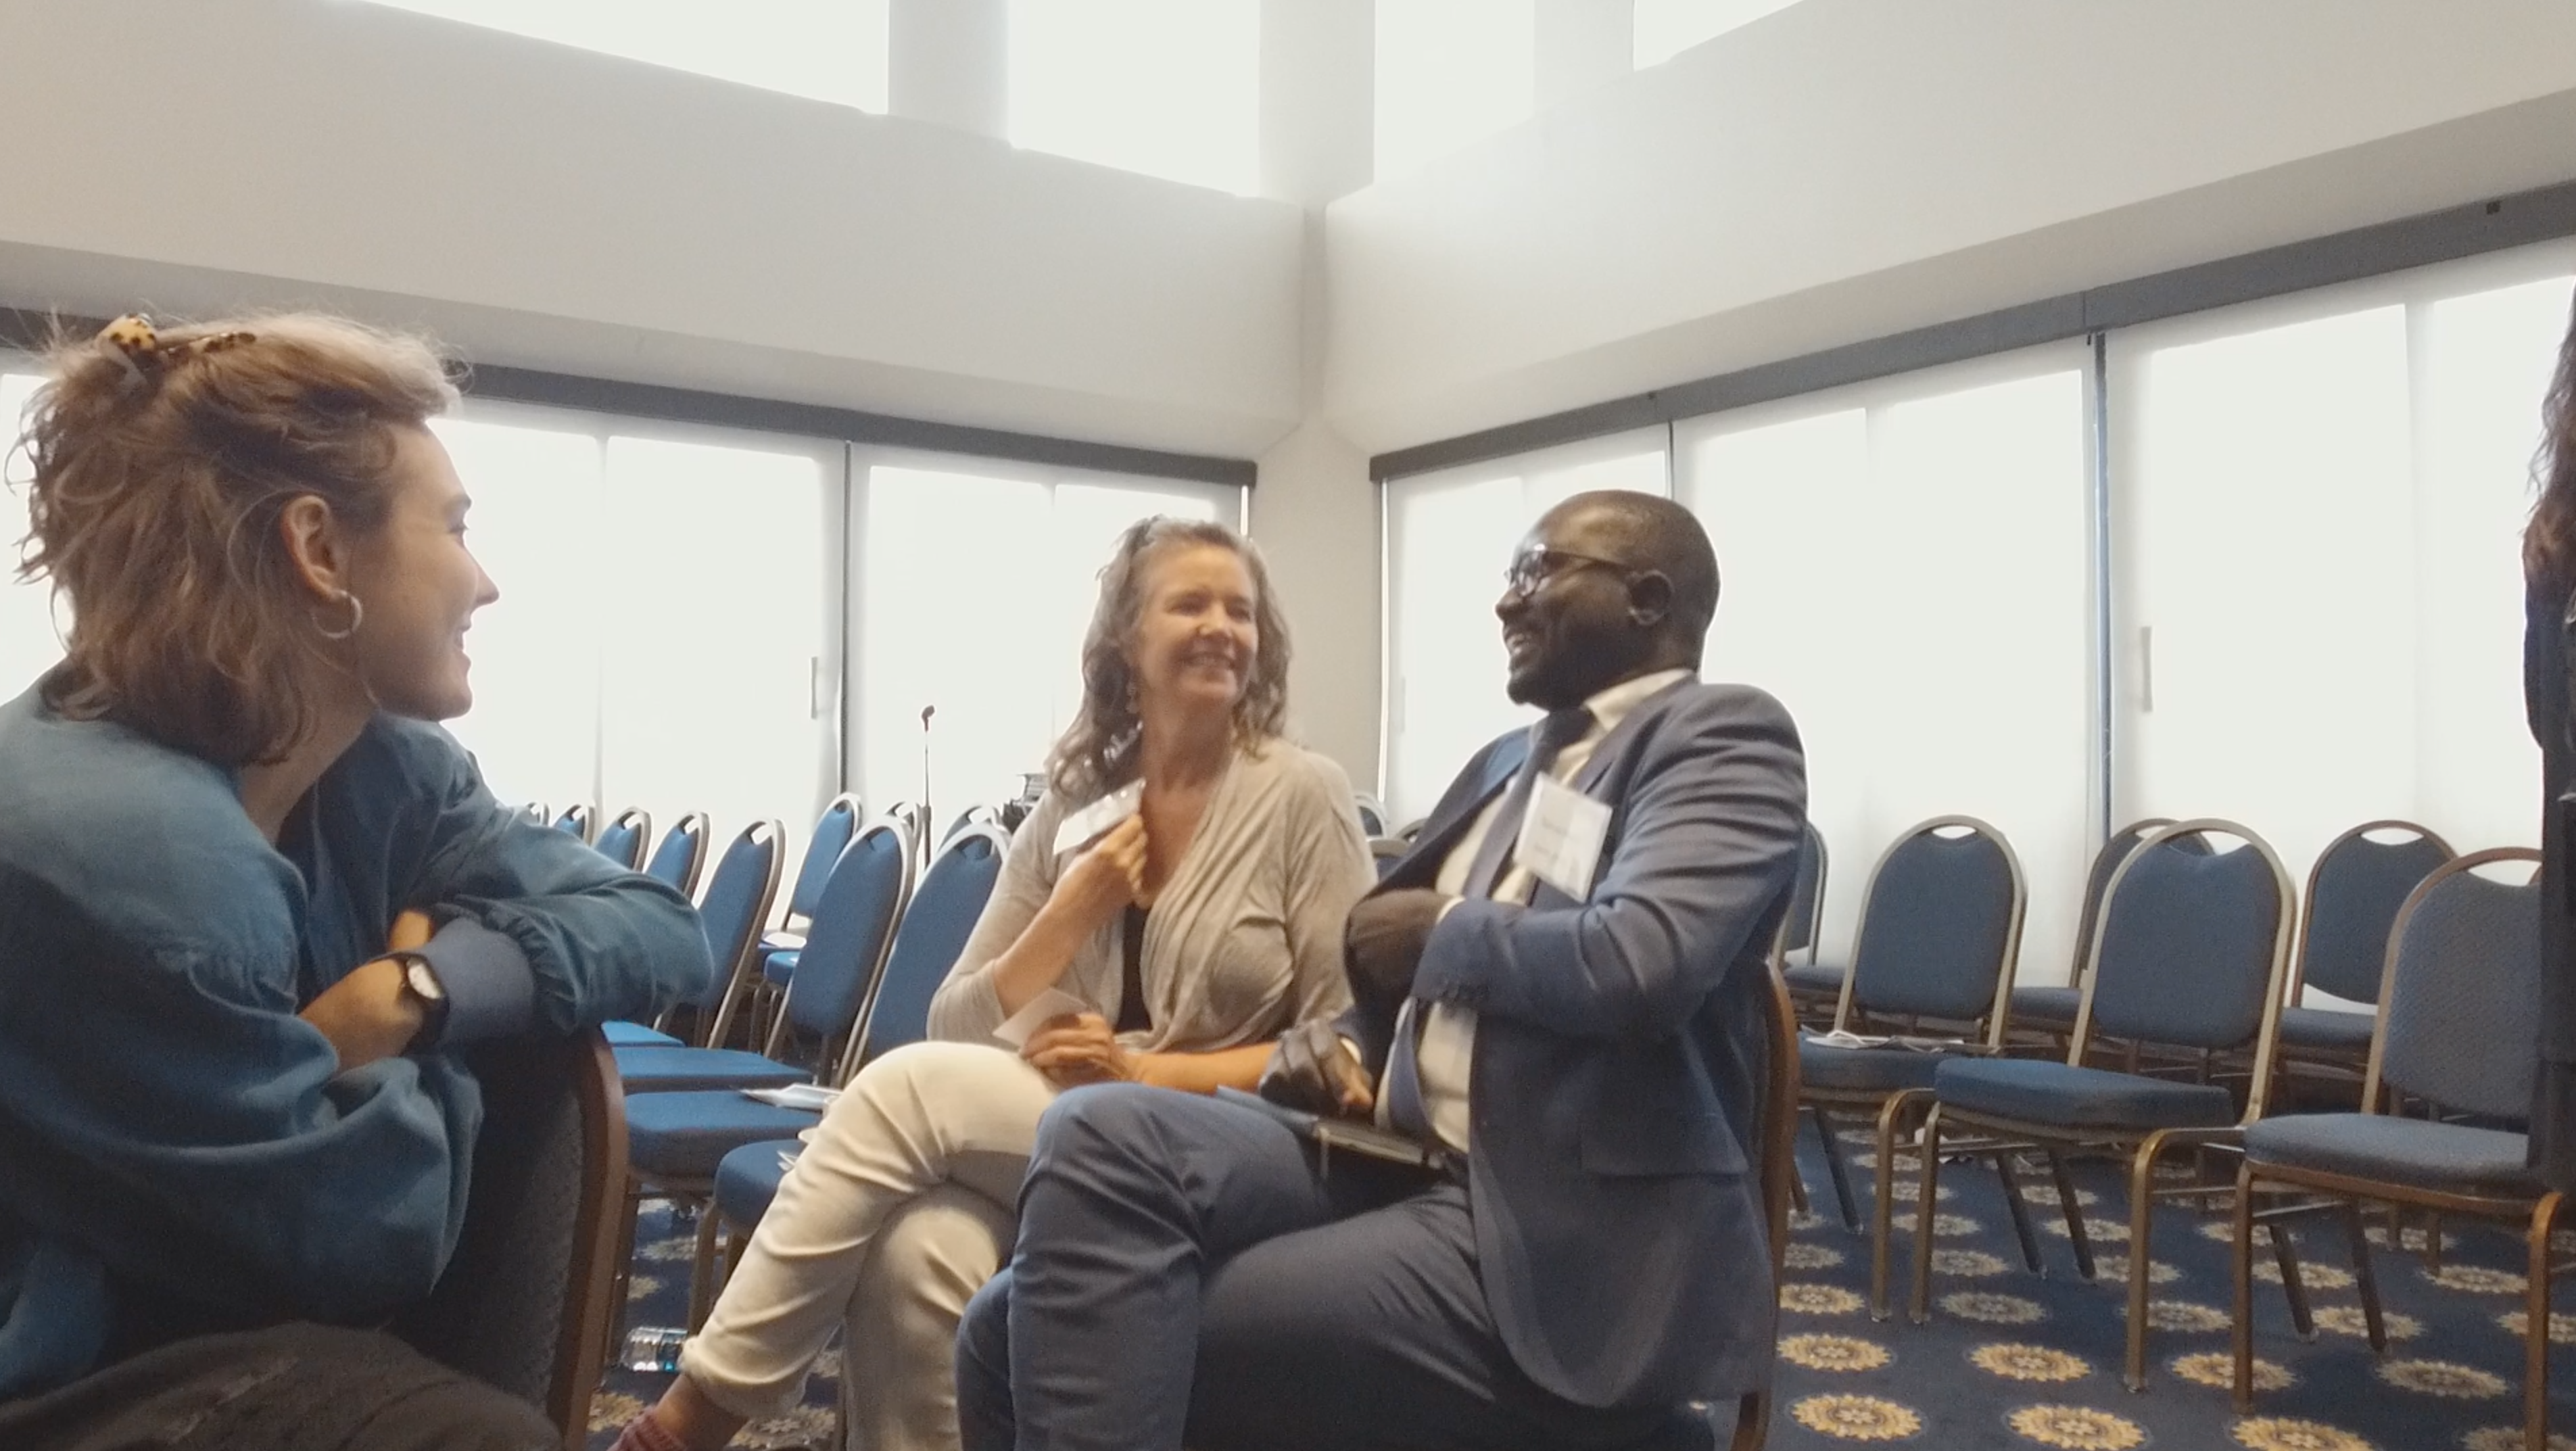 Teaching Partners Alexandra and Laura Marie discuss the panel with conference participant. Image by Dominique Green. Washington, D.C., 2019.